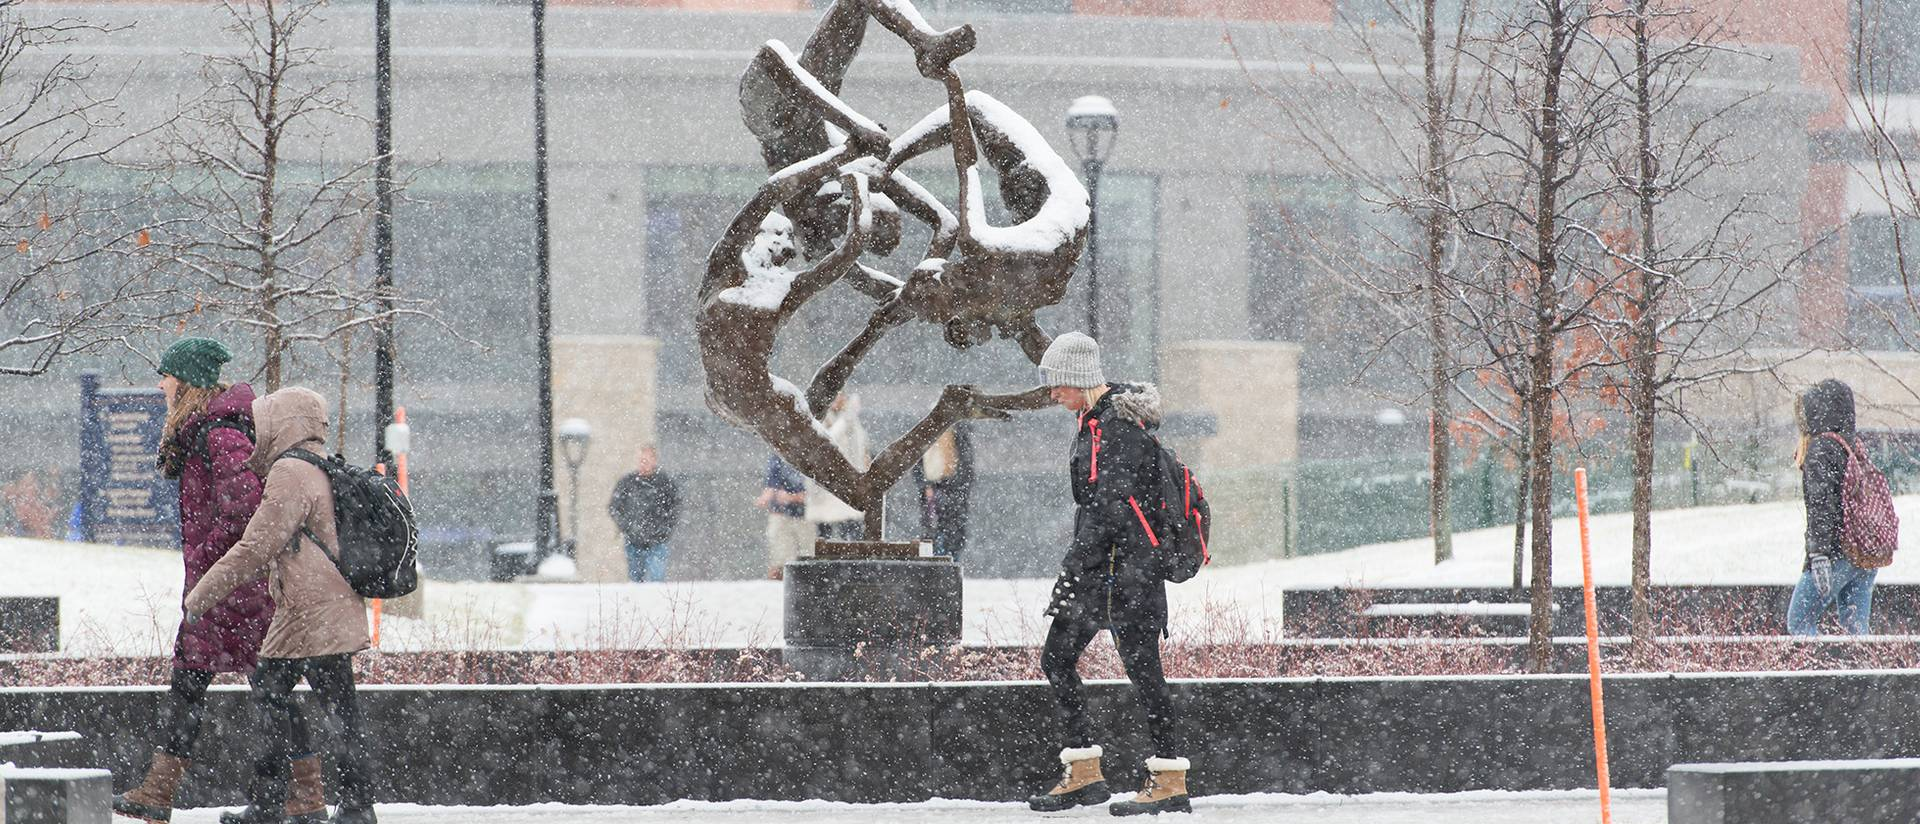 Students walking through campus on a snowy day